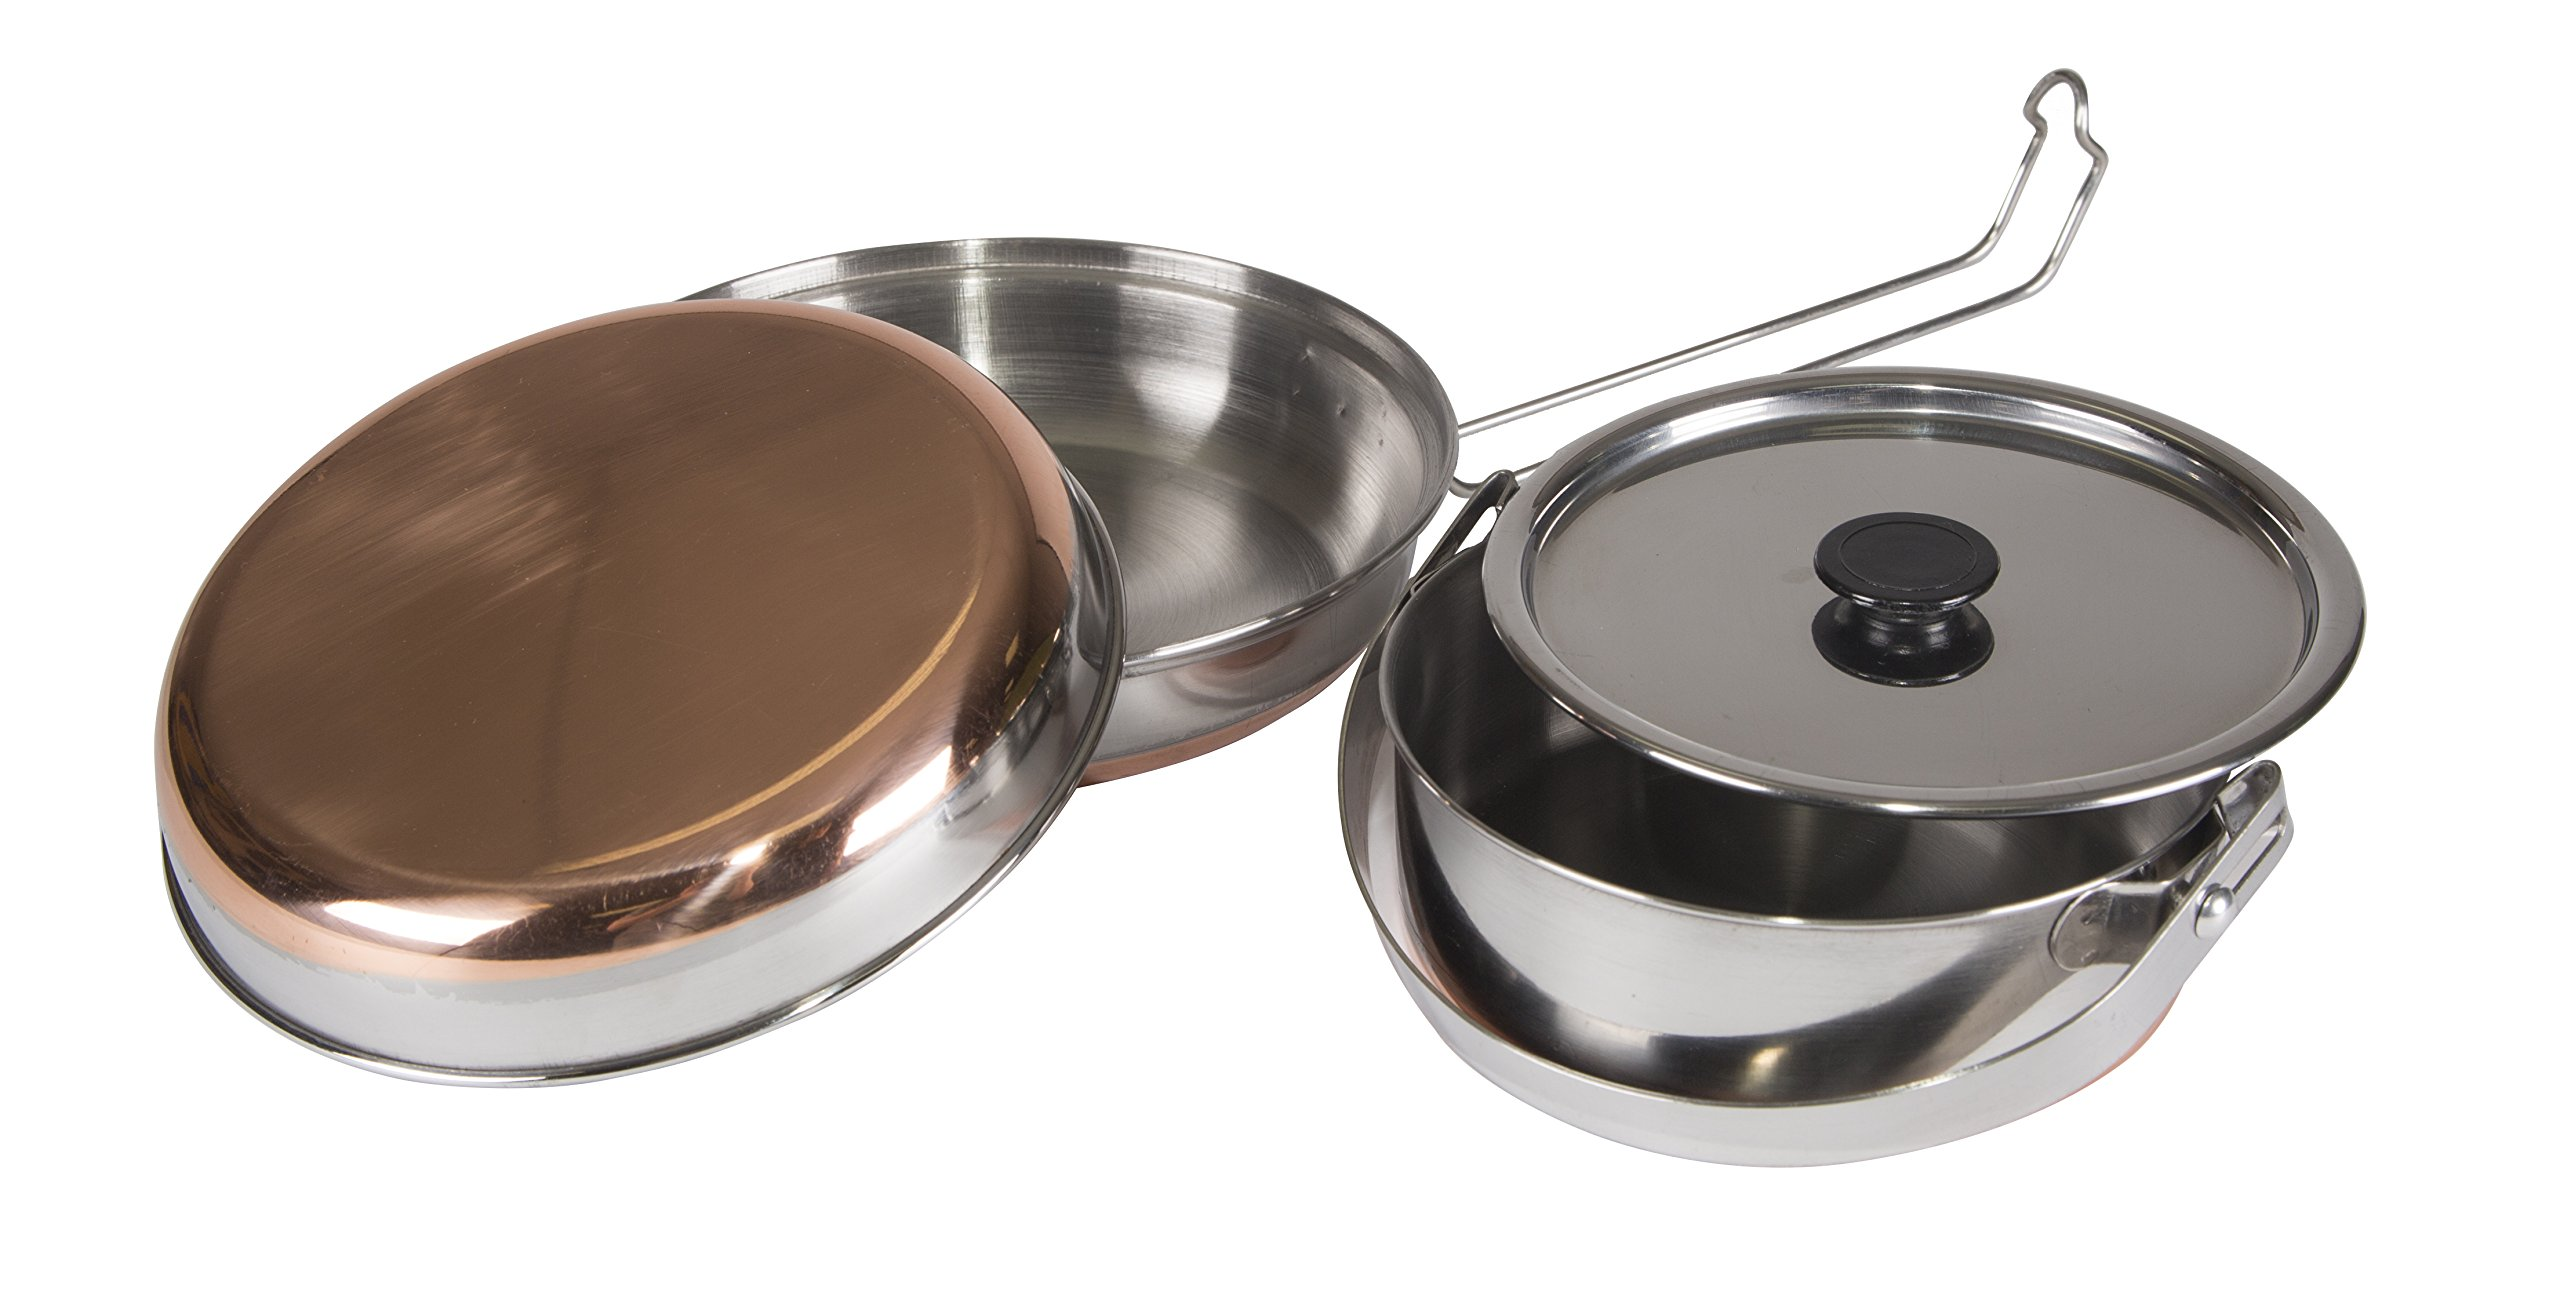 STANSPORT - Stainless Steel Mess Kit for Camping,Backpacking & Outdoors by Stansport